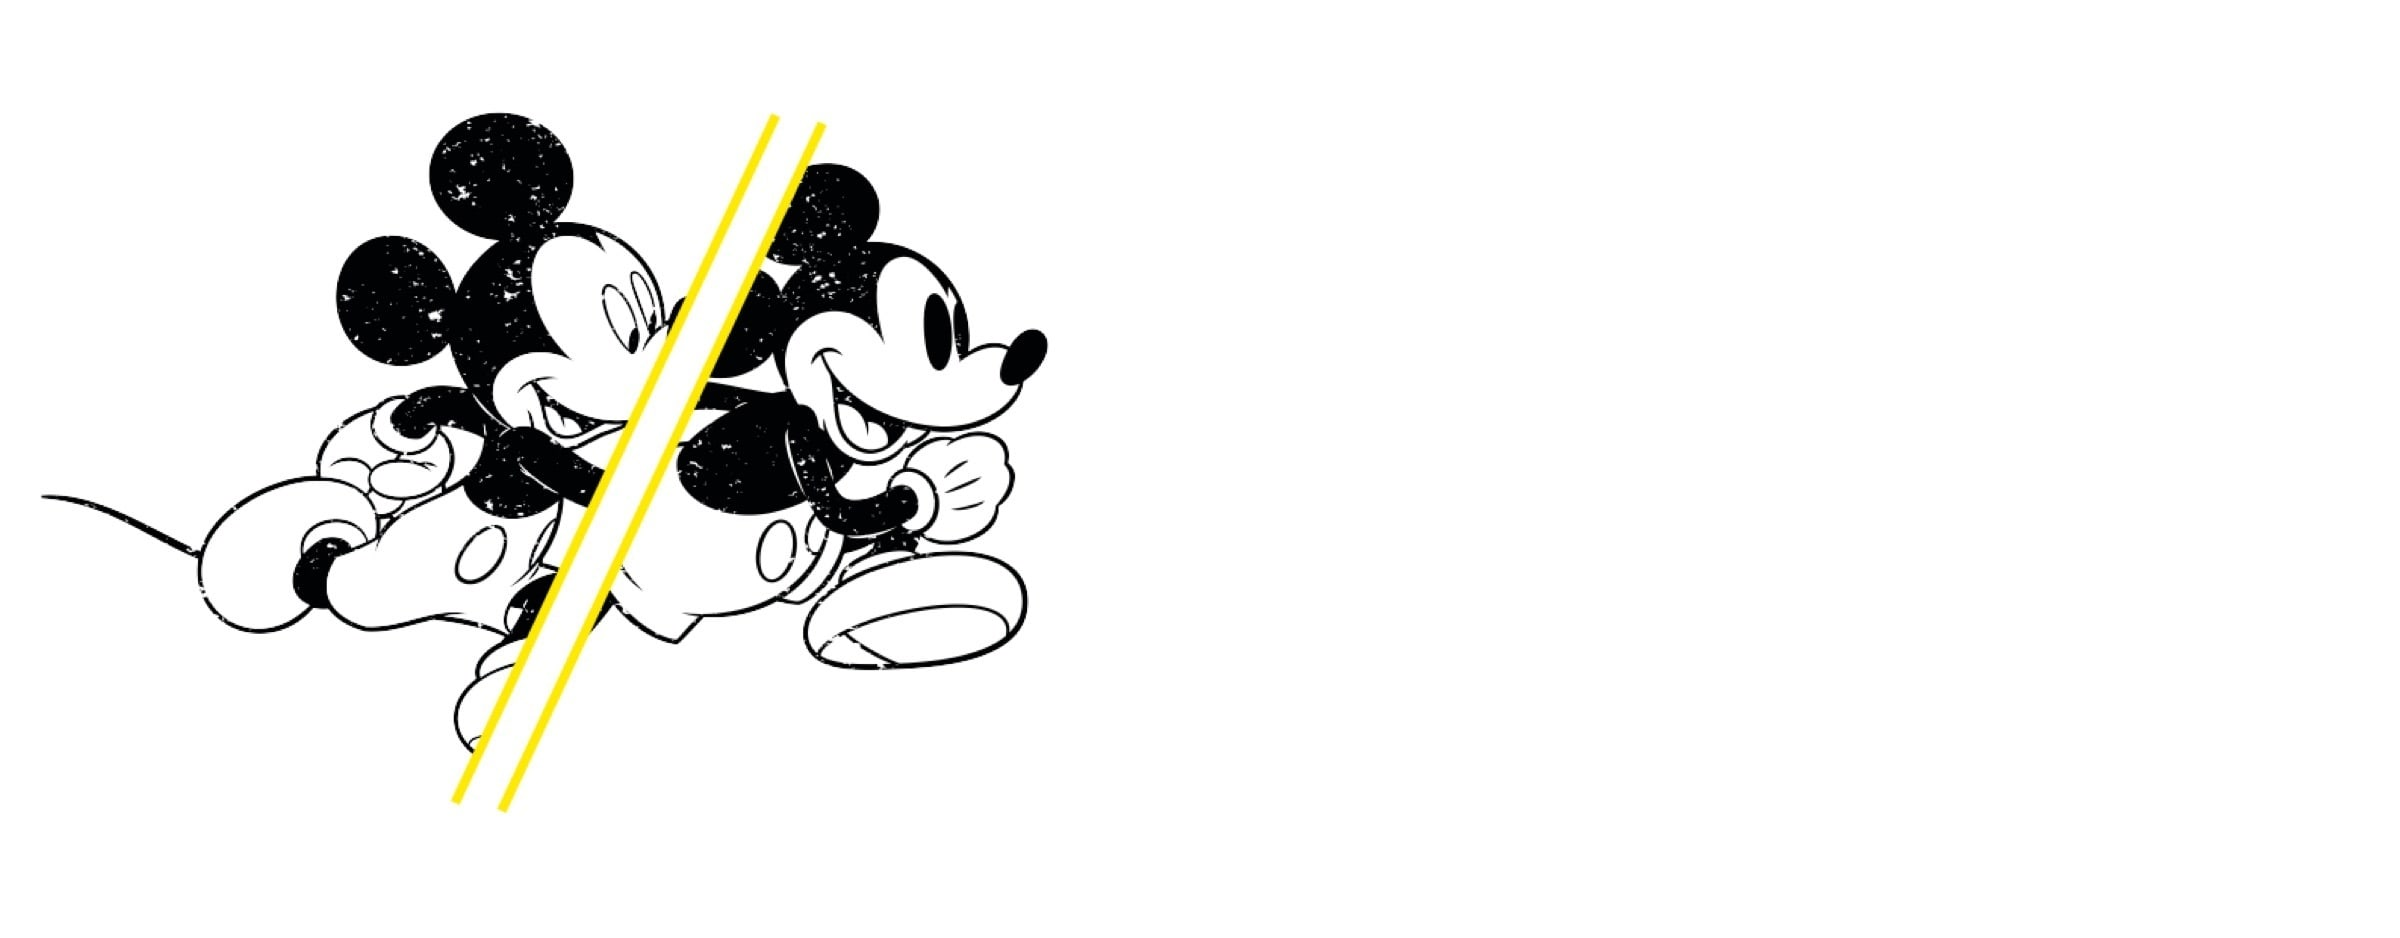 Mickey 90 | Celebrate 90 years of the 'True Original' Mickey Mouse 2